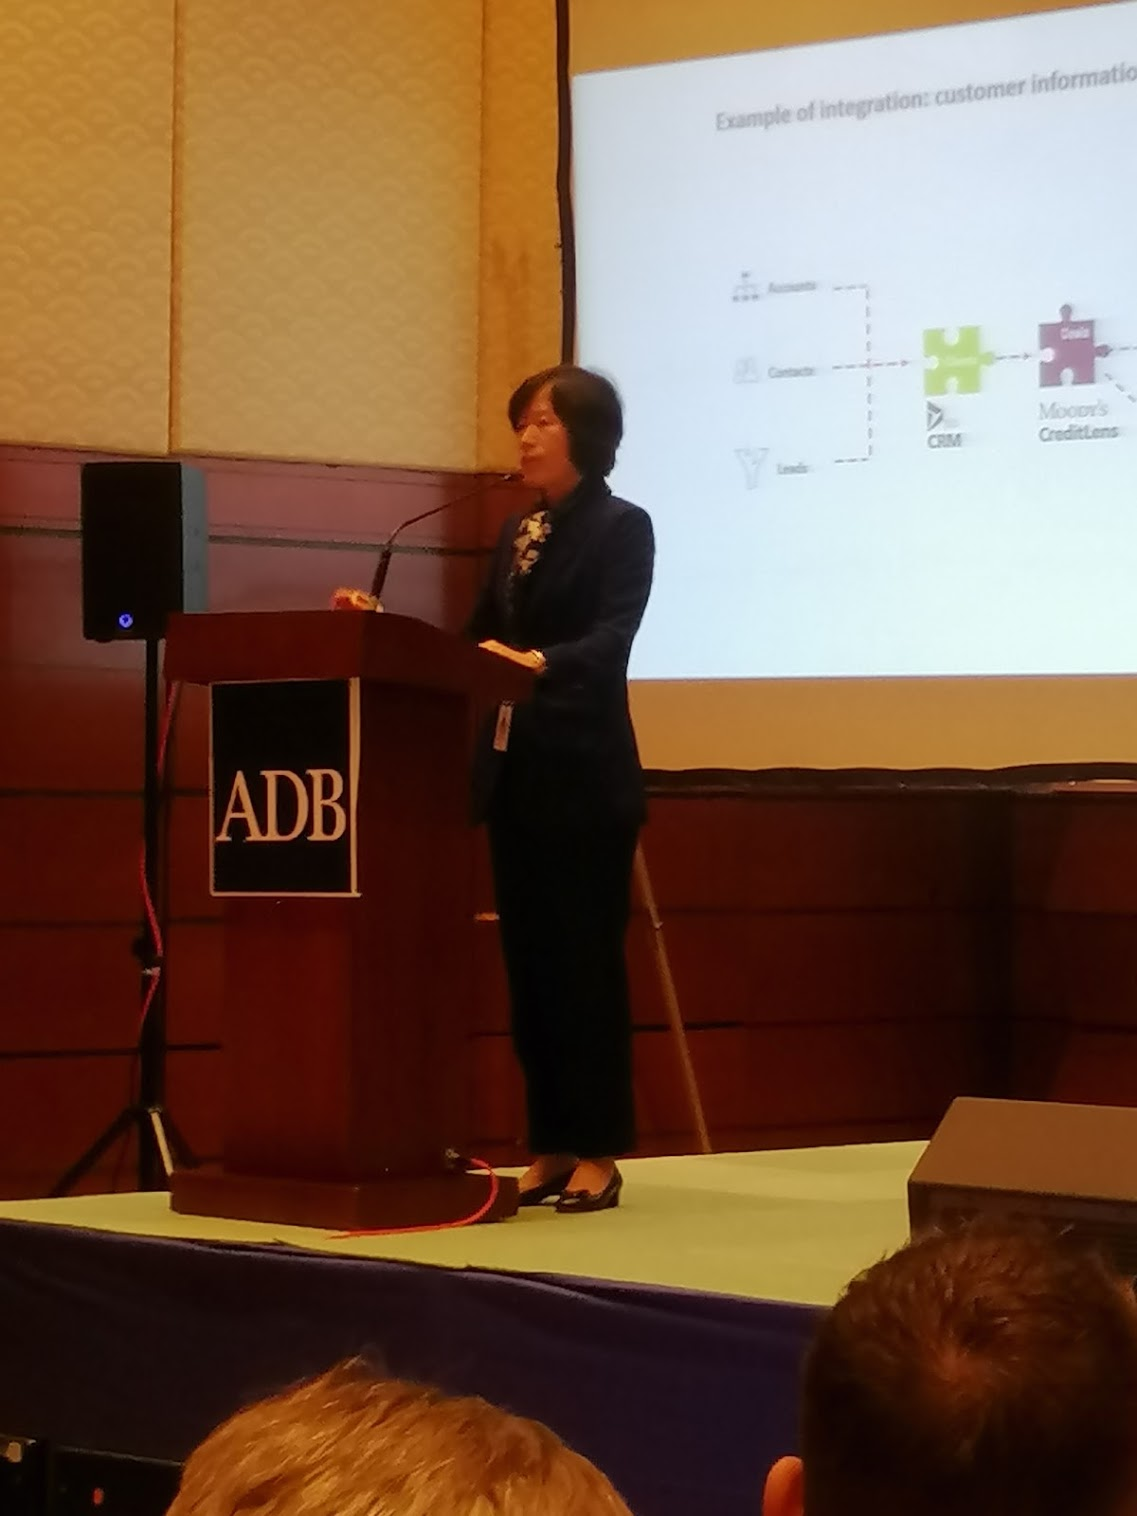 2:07 p.m. - Risa Teng, DG, PPFD, ADB, goes in depth with the existing systems and their integration.